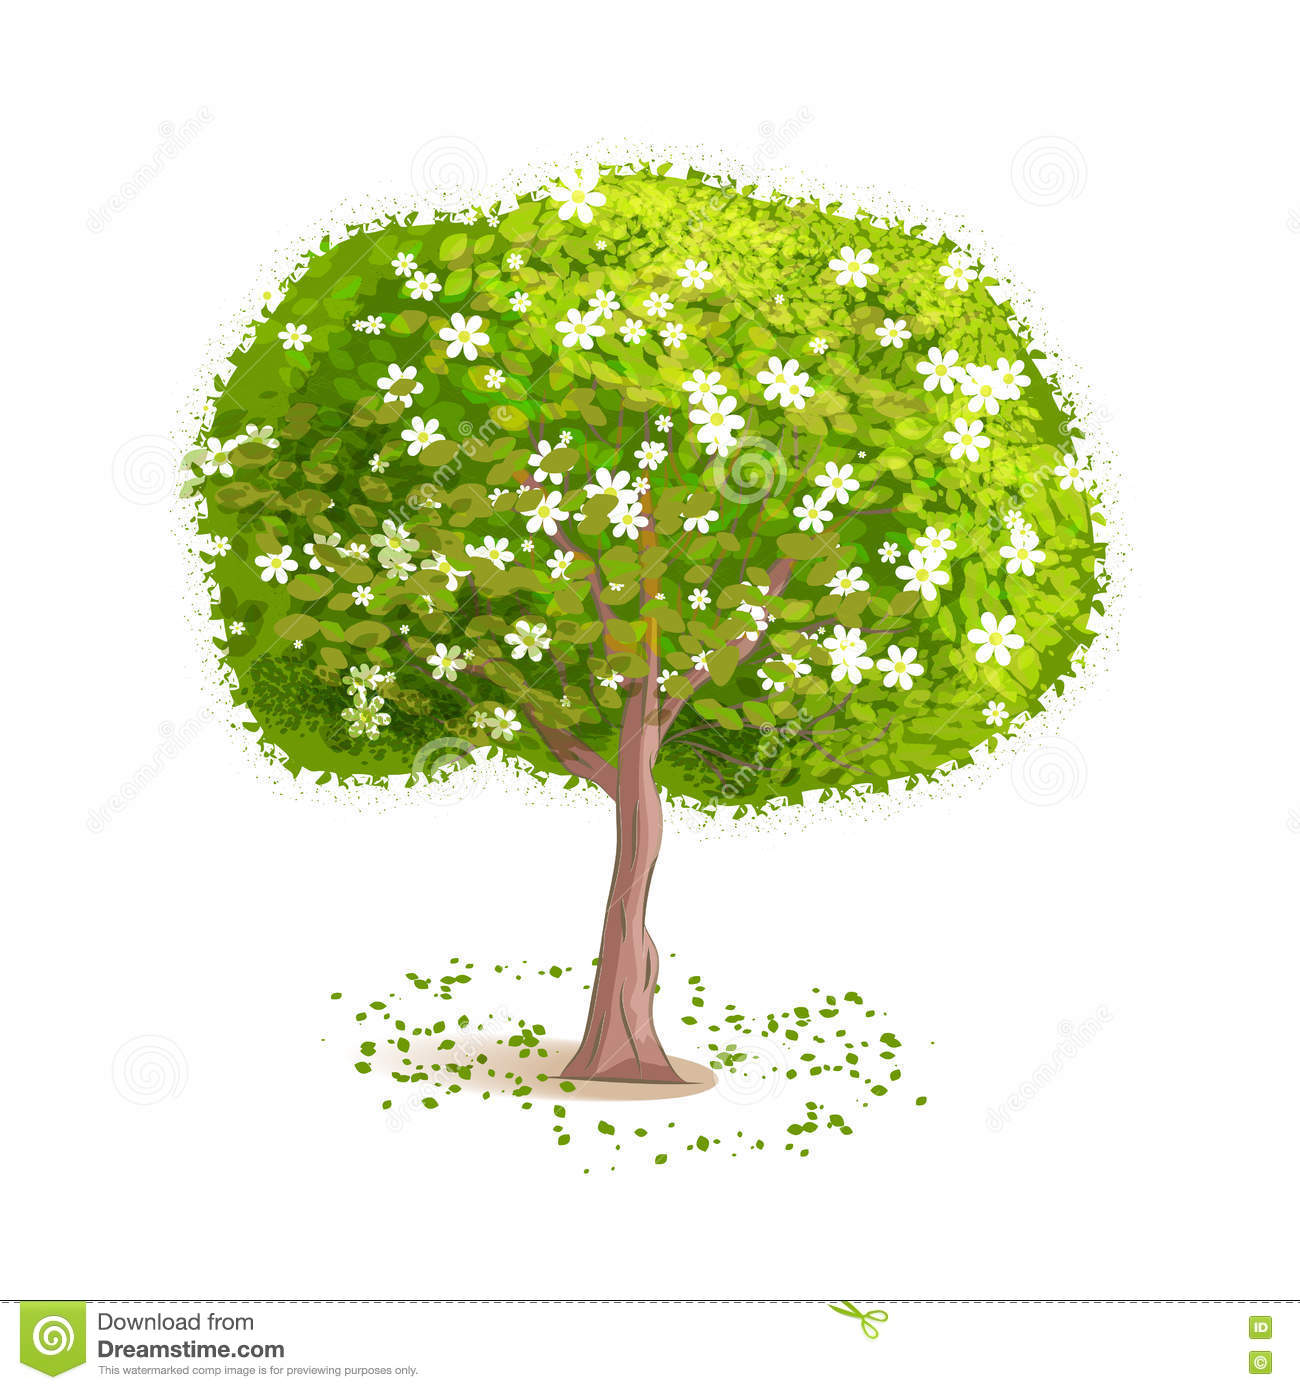 Spring Green Leaves And Flowers Background With Plants: Vector Tree Stock Vector. Illustration Of Harvest, Kind